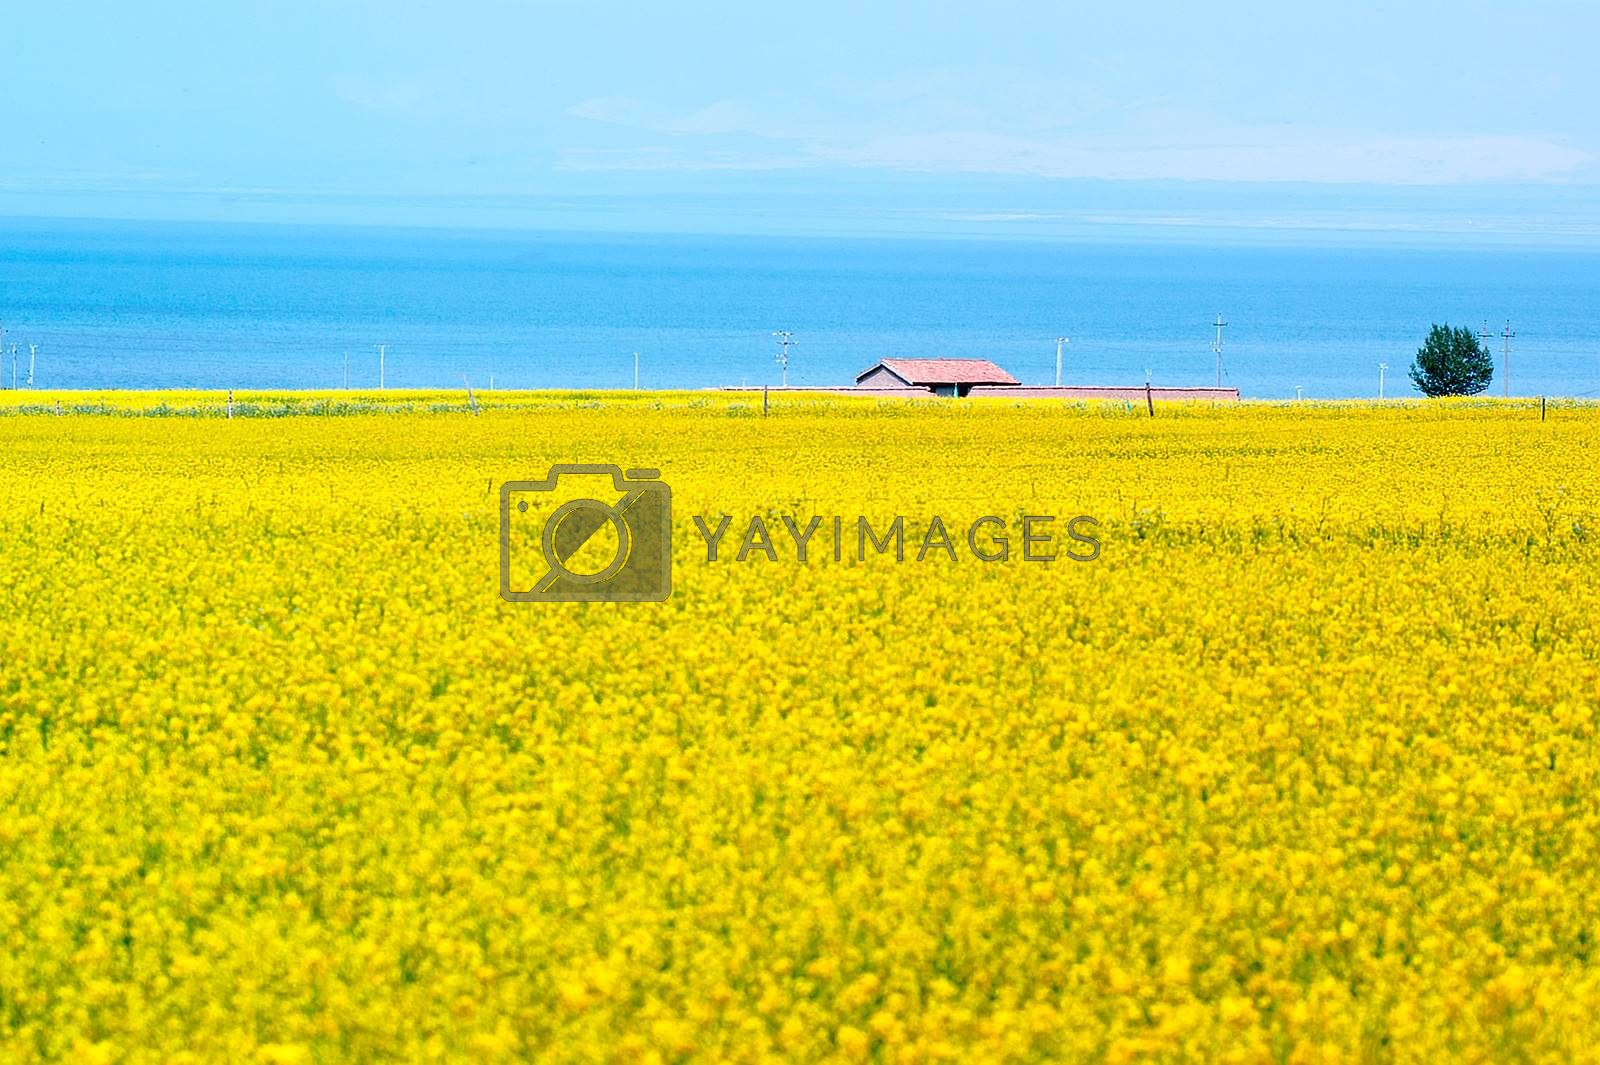 Taken in Qinghai Province, China